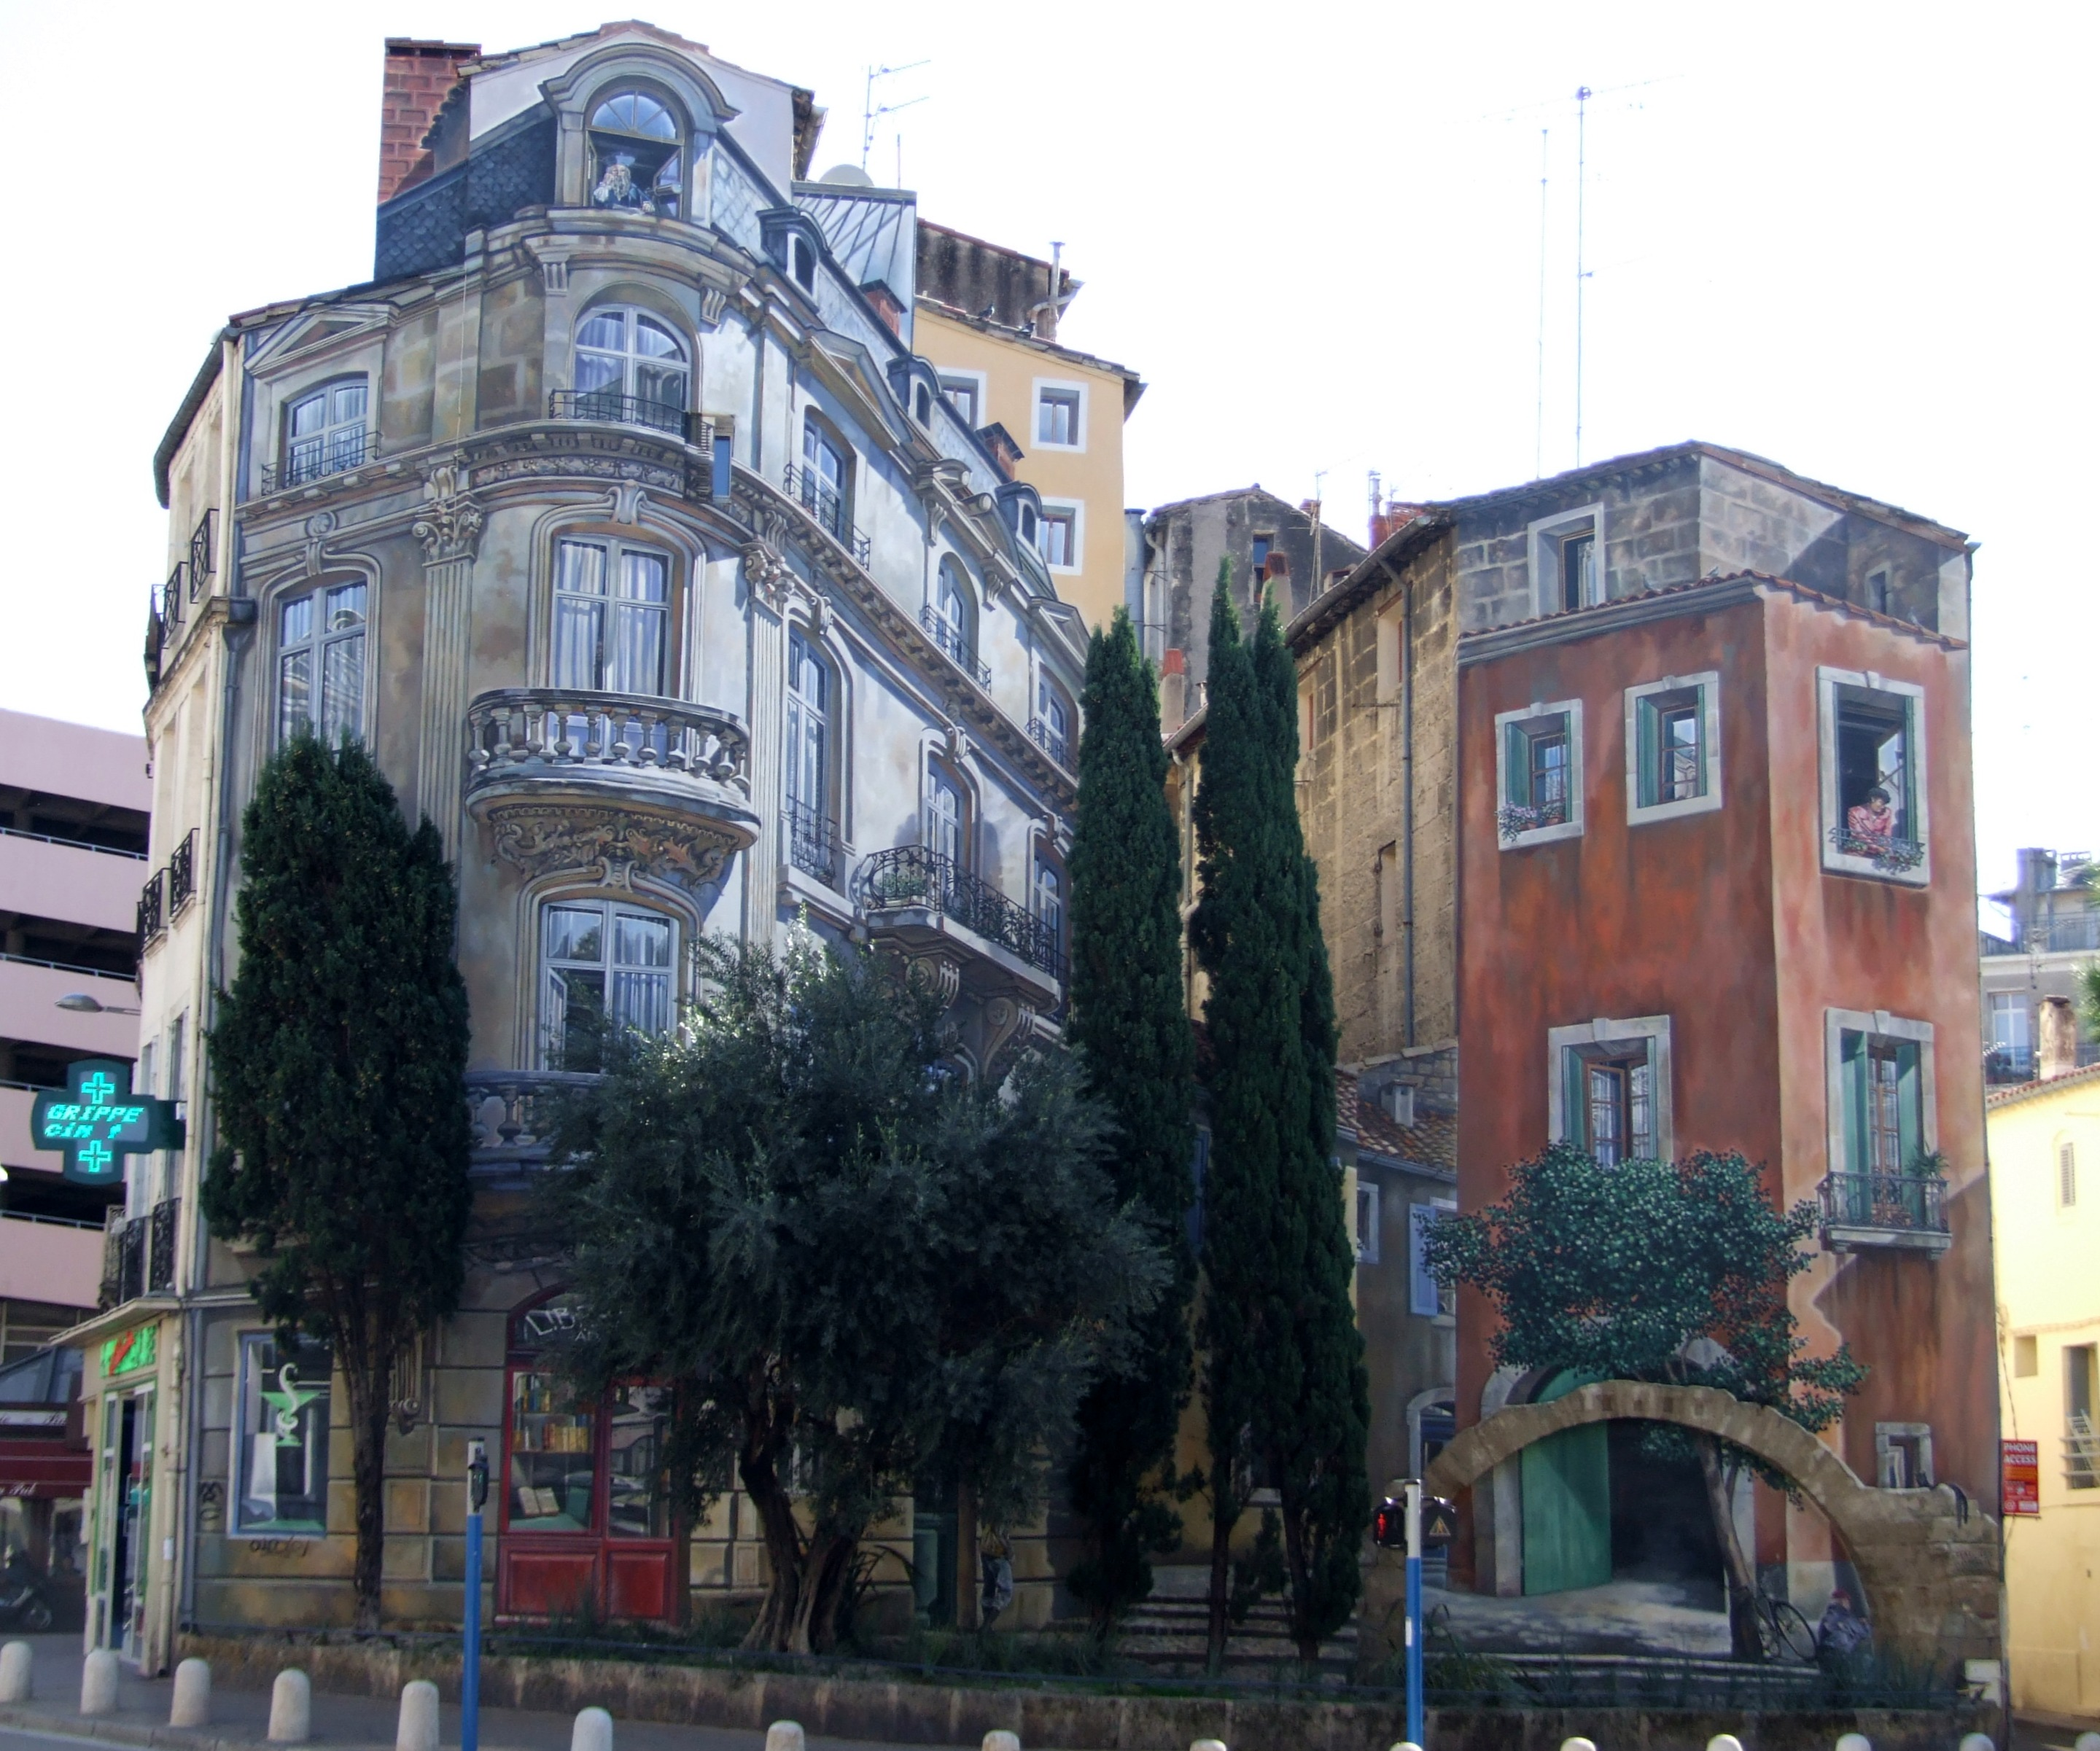 File:Montpellier - fresque murale.jpg - Wikimedia Commons